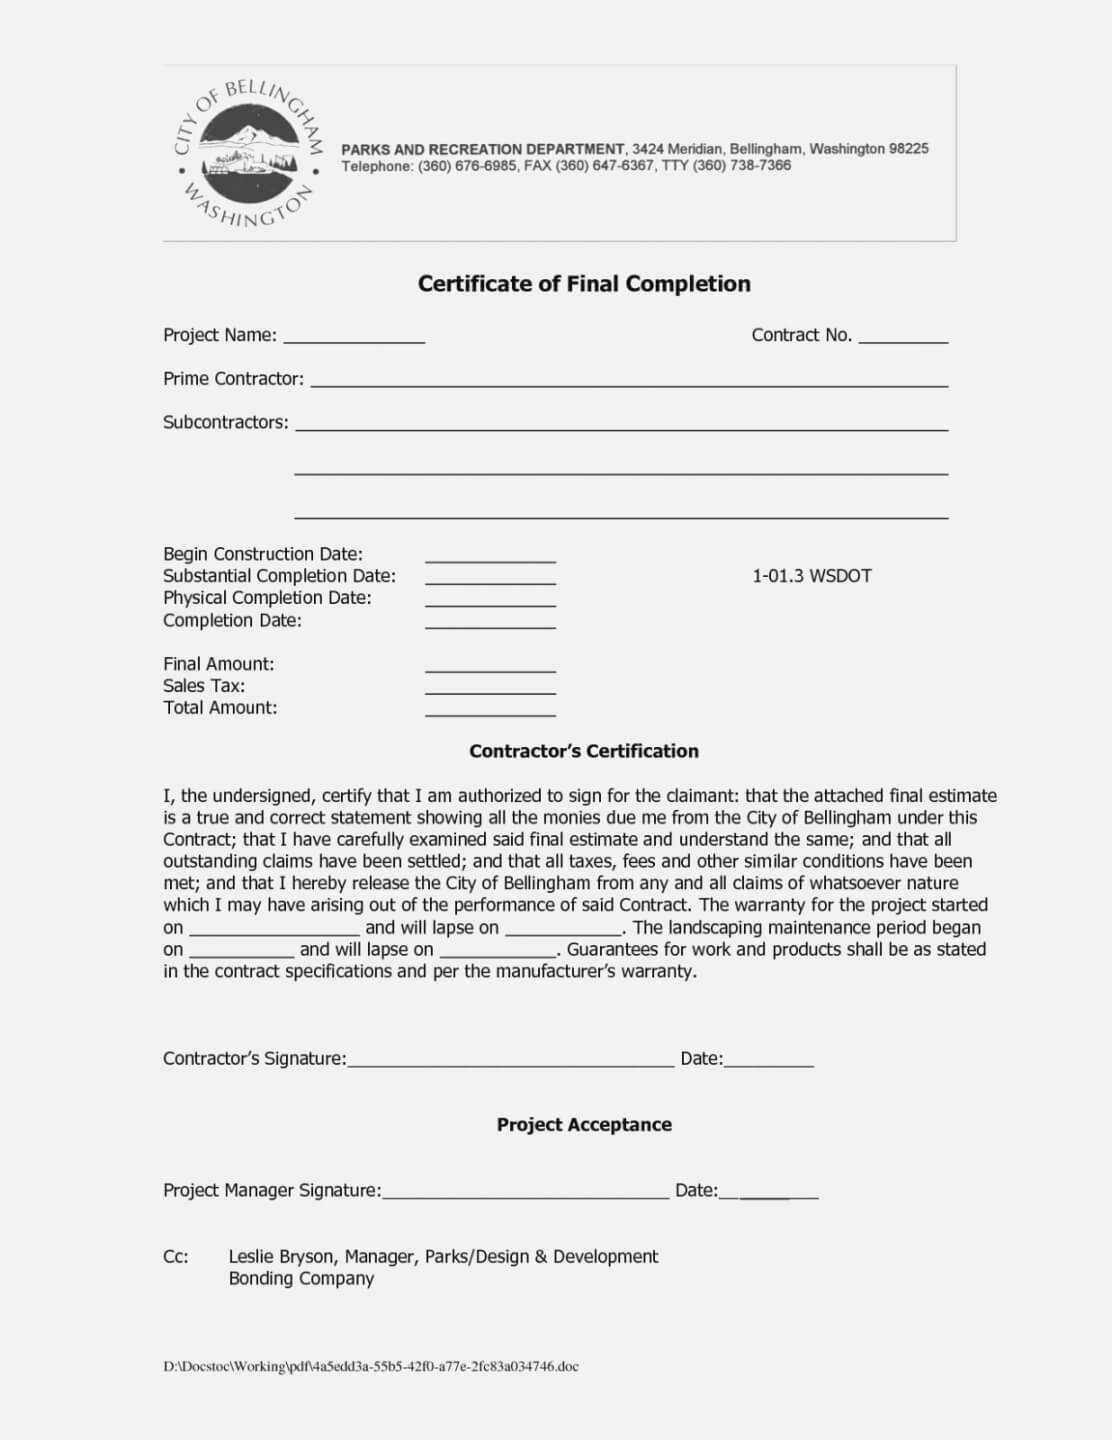 Roofing Certificate Of Completion Template - Zimer.bwong.co Throughout Certificate Of Completion Template Construction